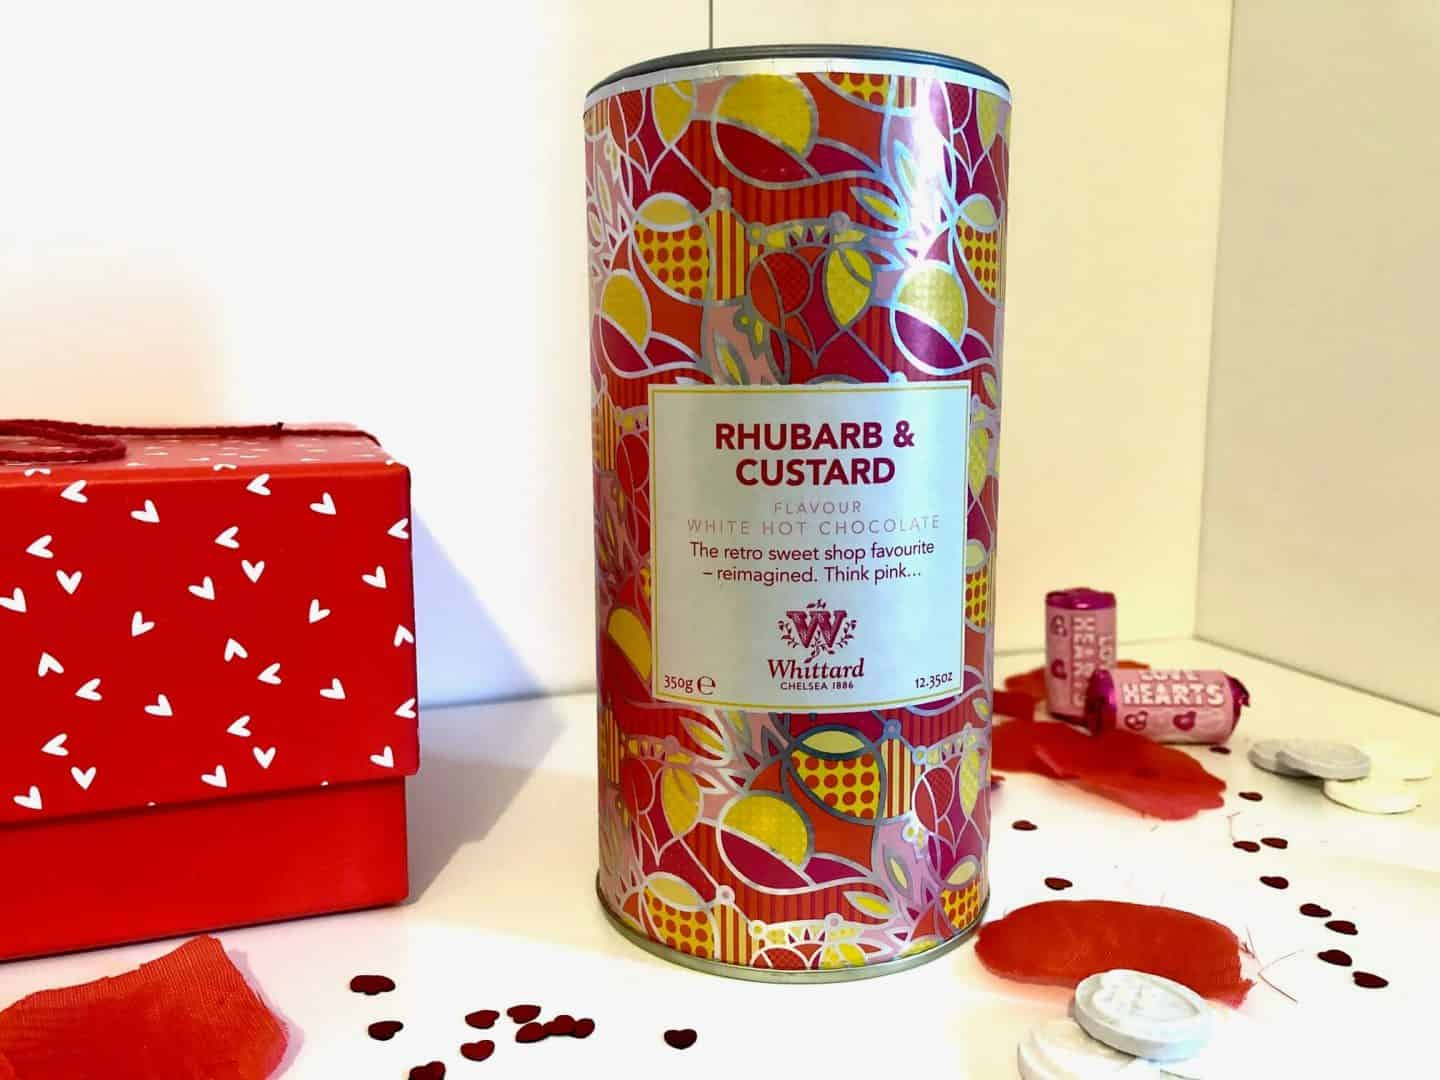 Limited Edition Rhubarb & Custard Flavour White Hot Chocolate